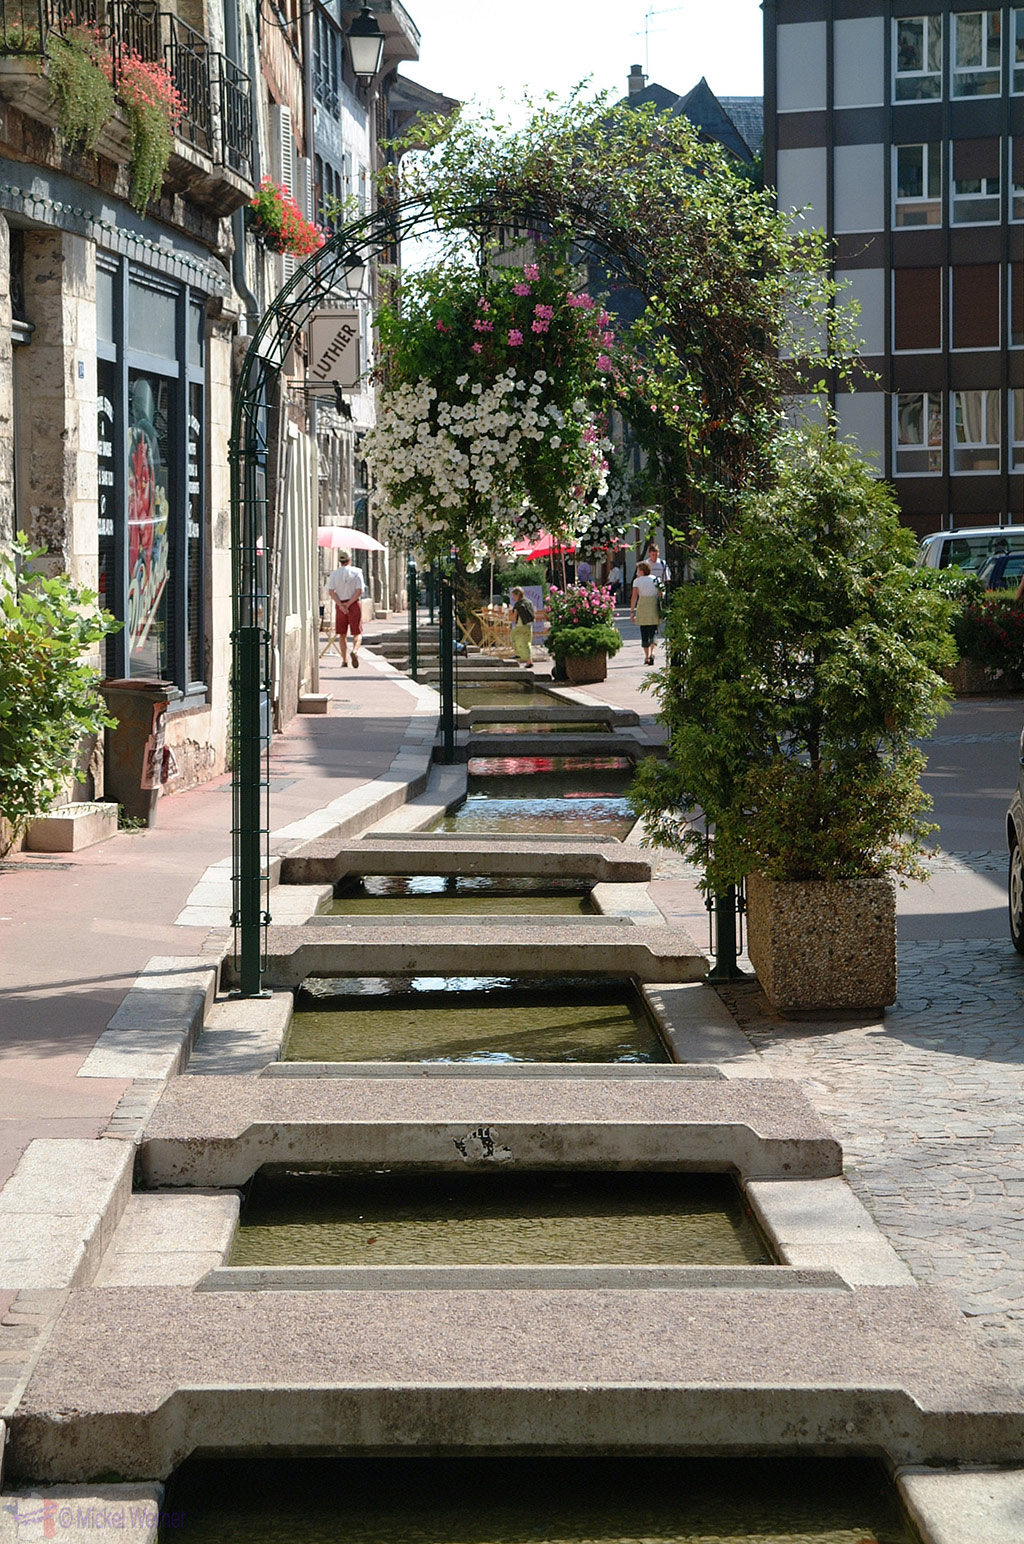 Little stream built-in the road in Rouen